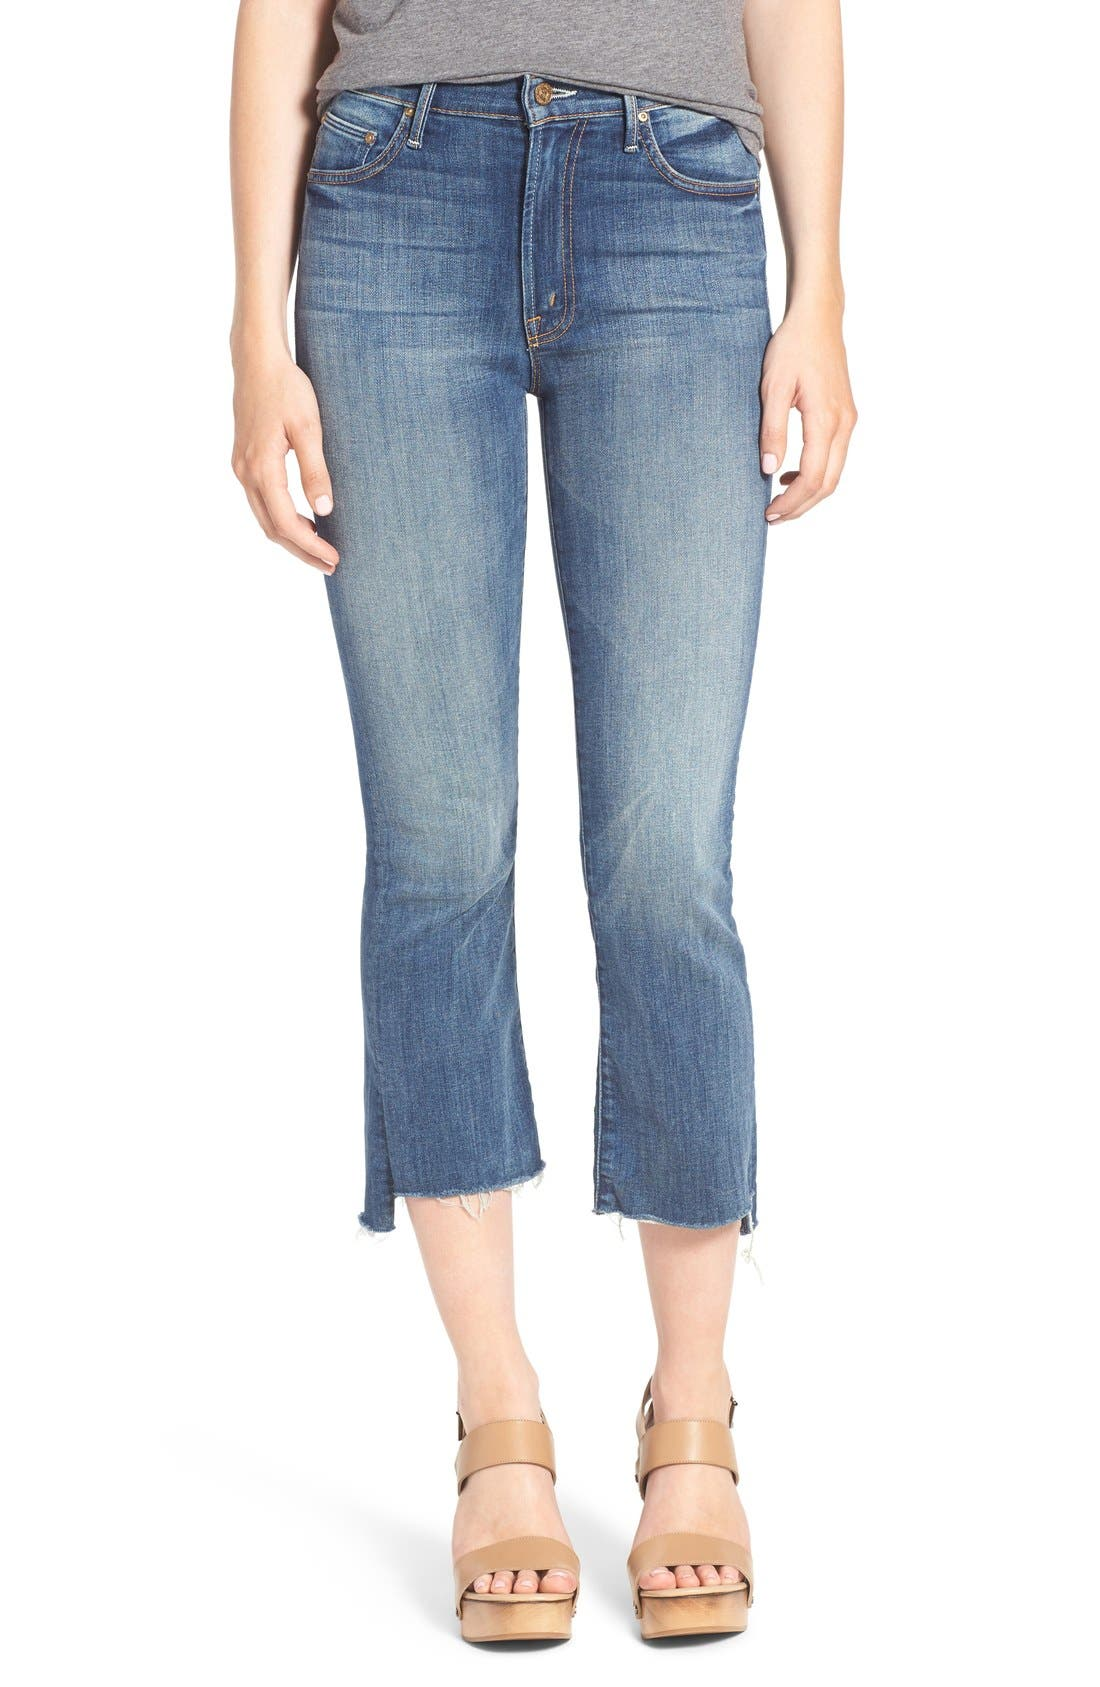 'The Insider' Crop Step Fray Jeans,                         Main,                         color, Not Rough Enough